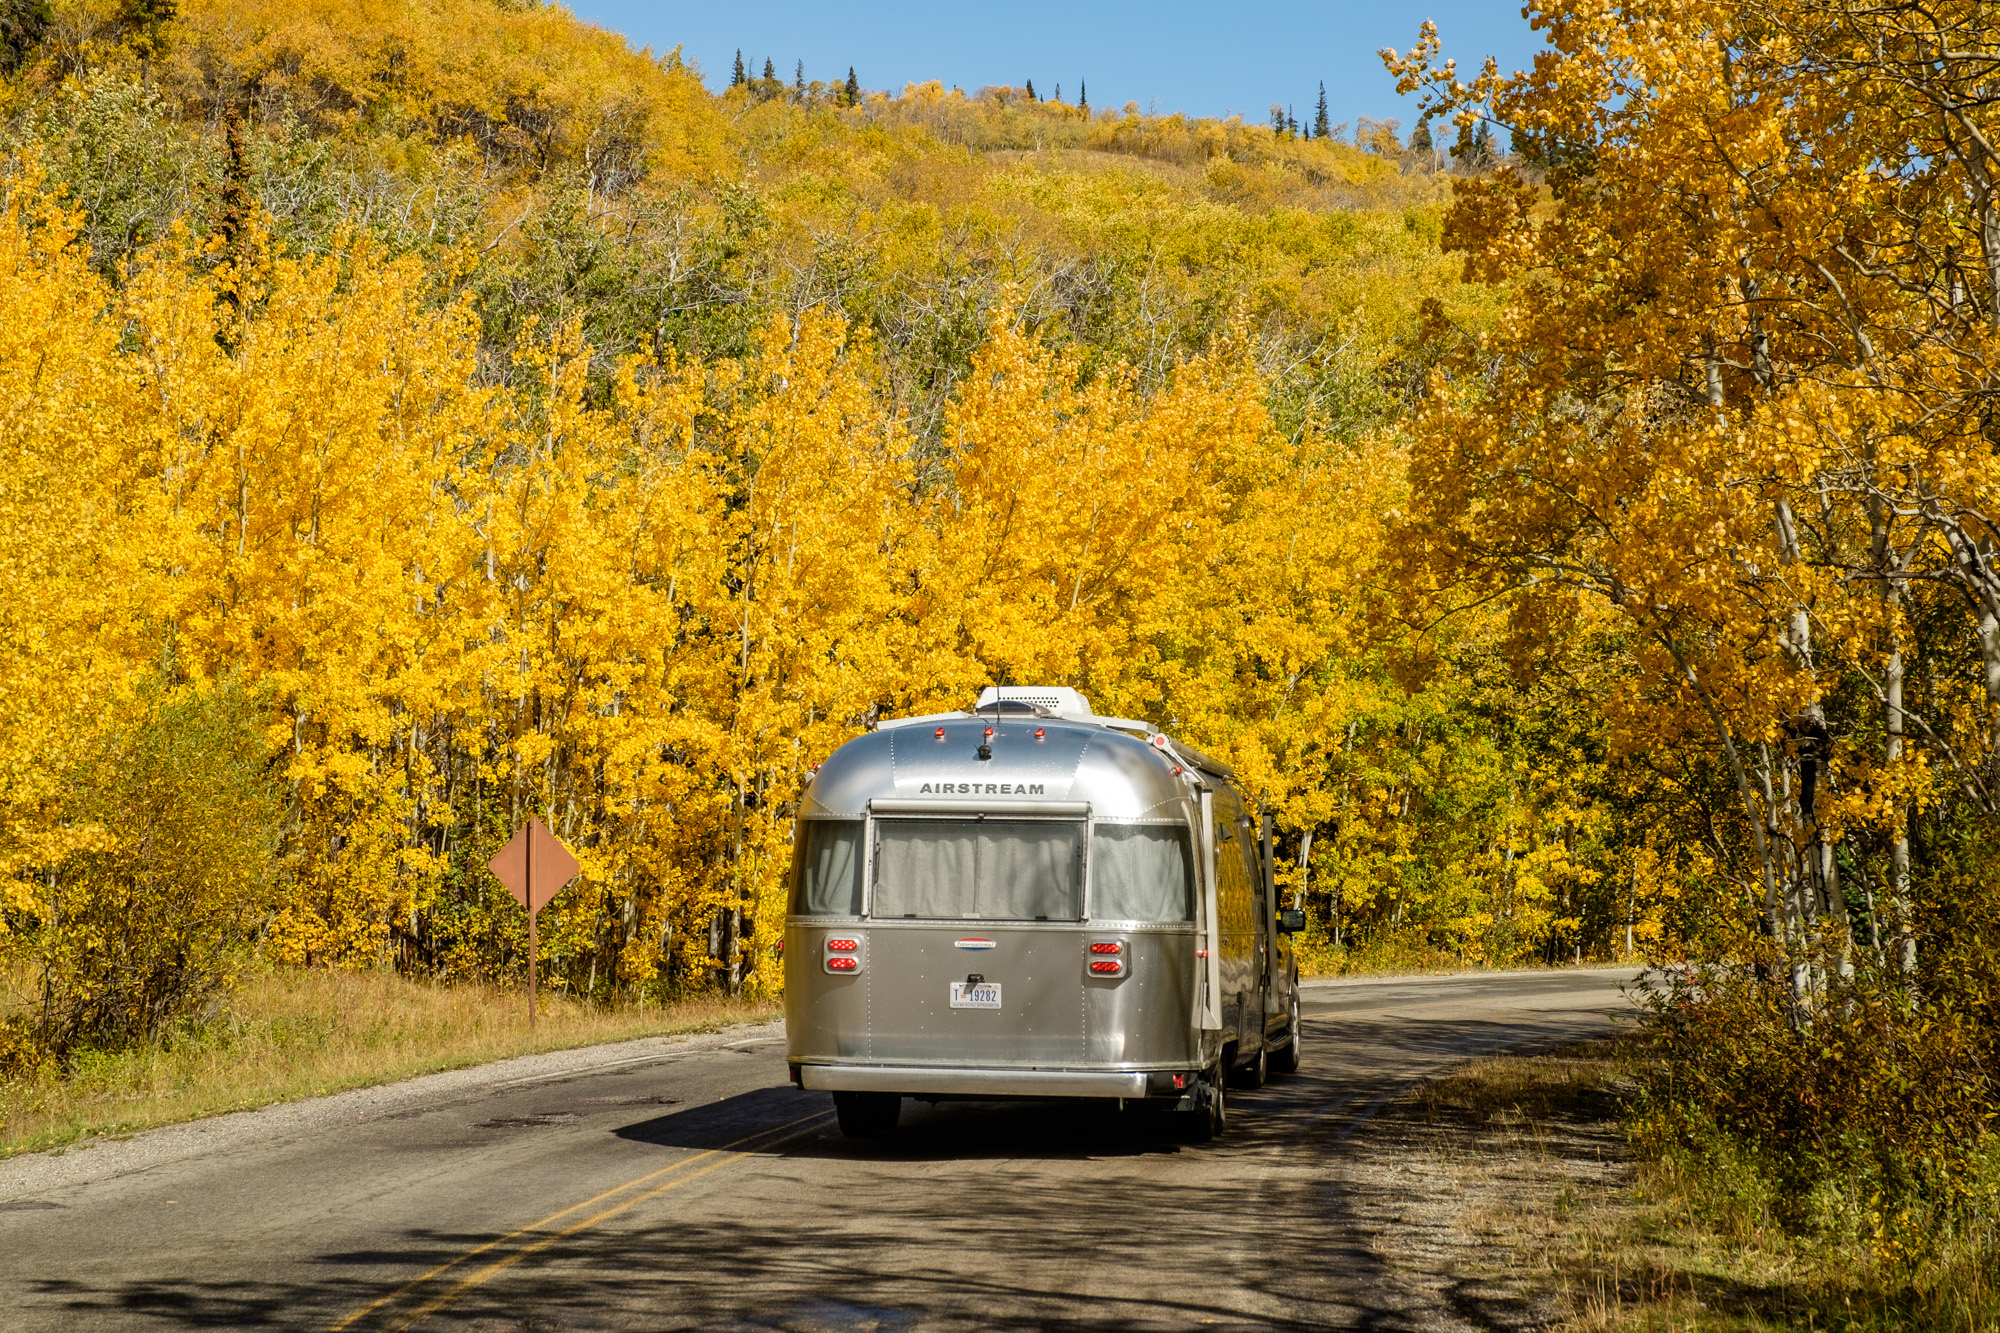 Wally the Airstream looks sharp during fall foliage in Glacier National Park in Montana!